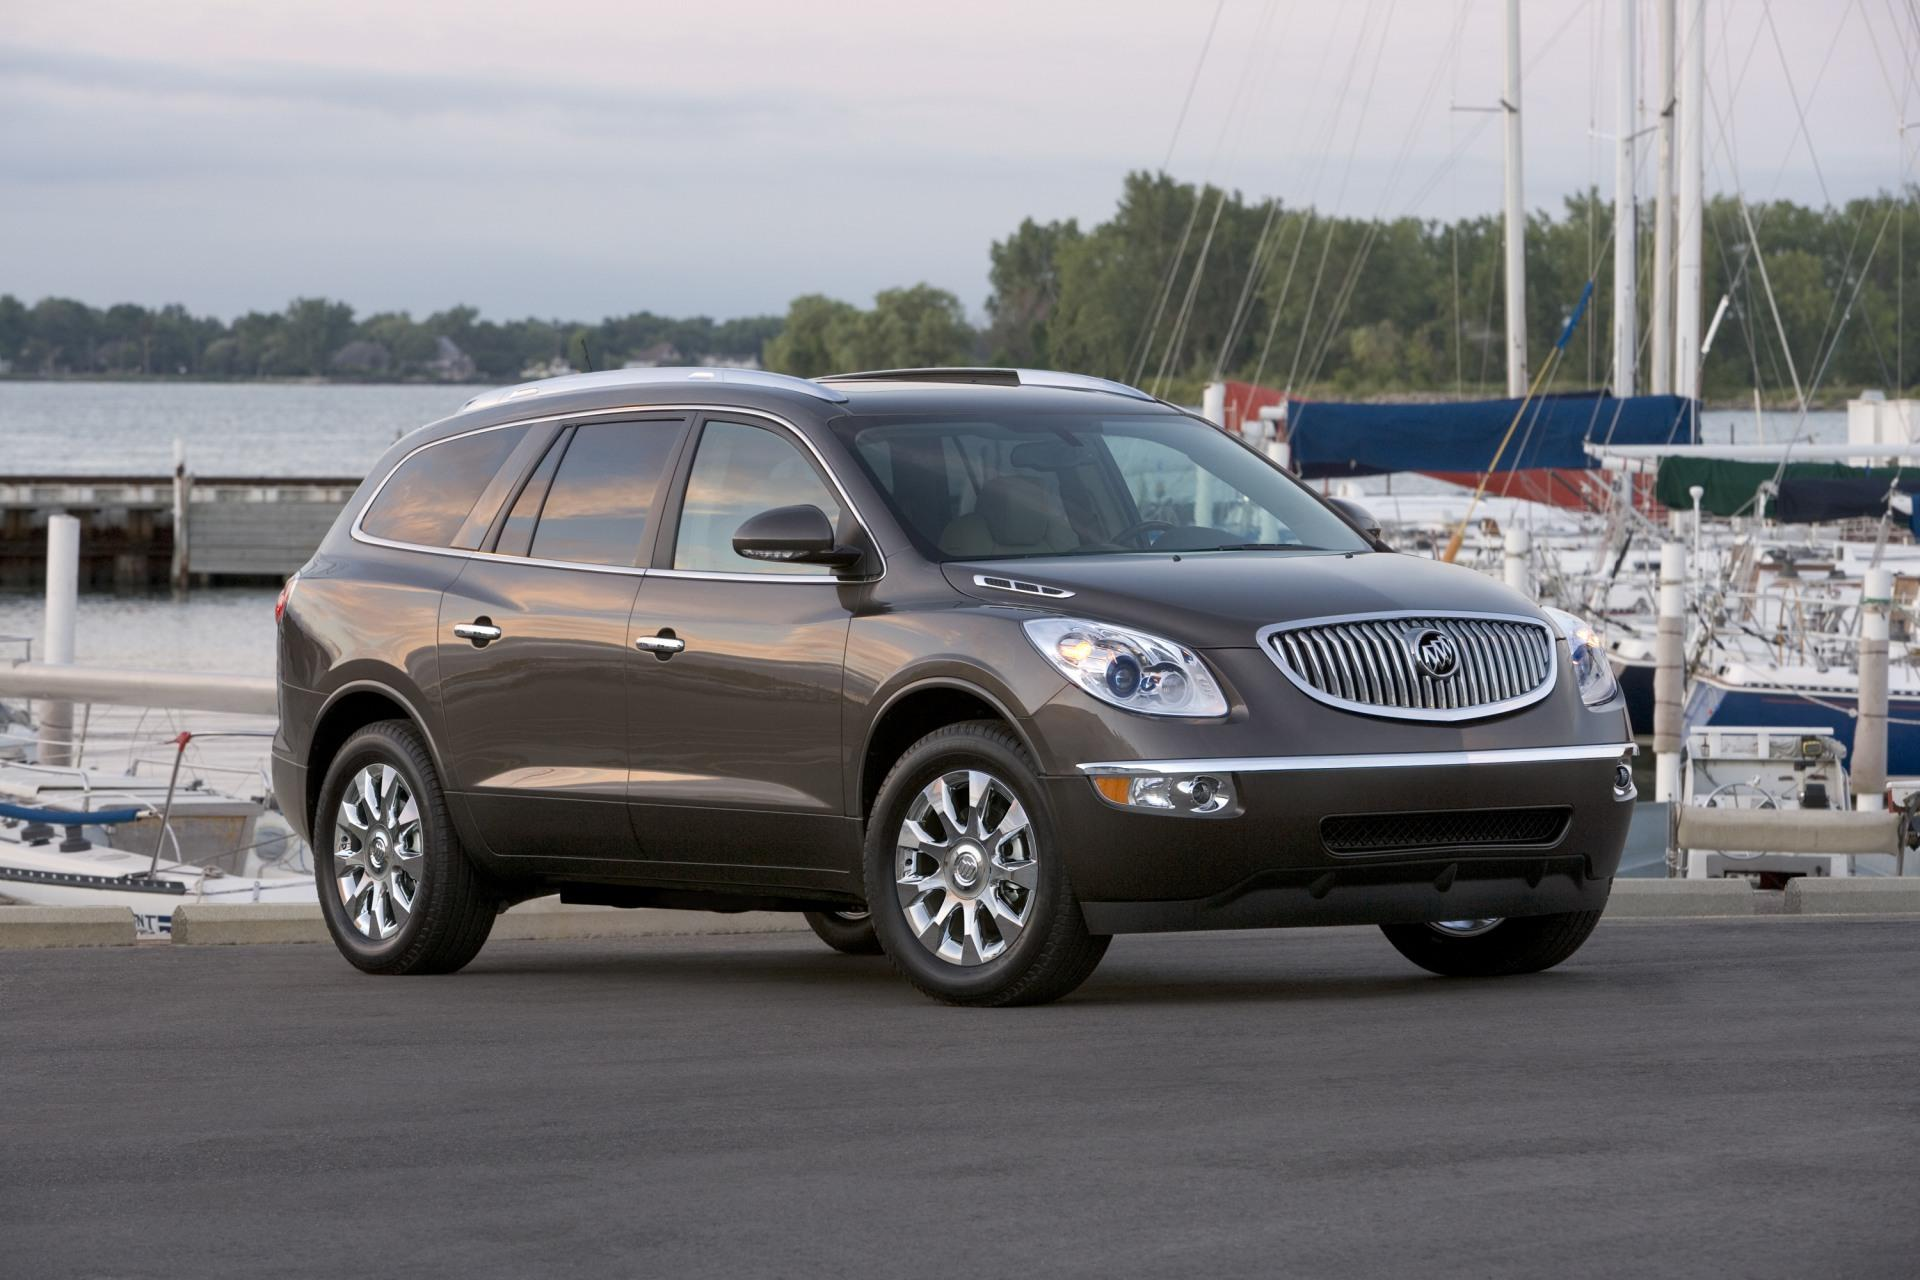 Cool Review About 2011 Buick Enclave Recalls with Awesome Images